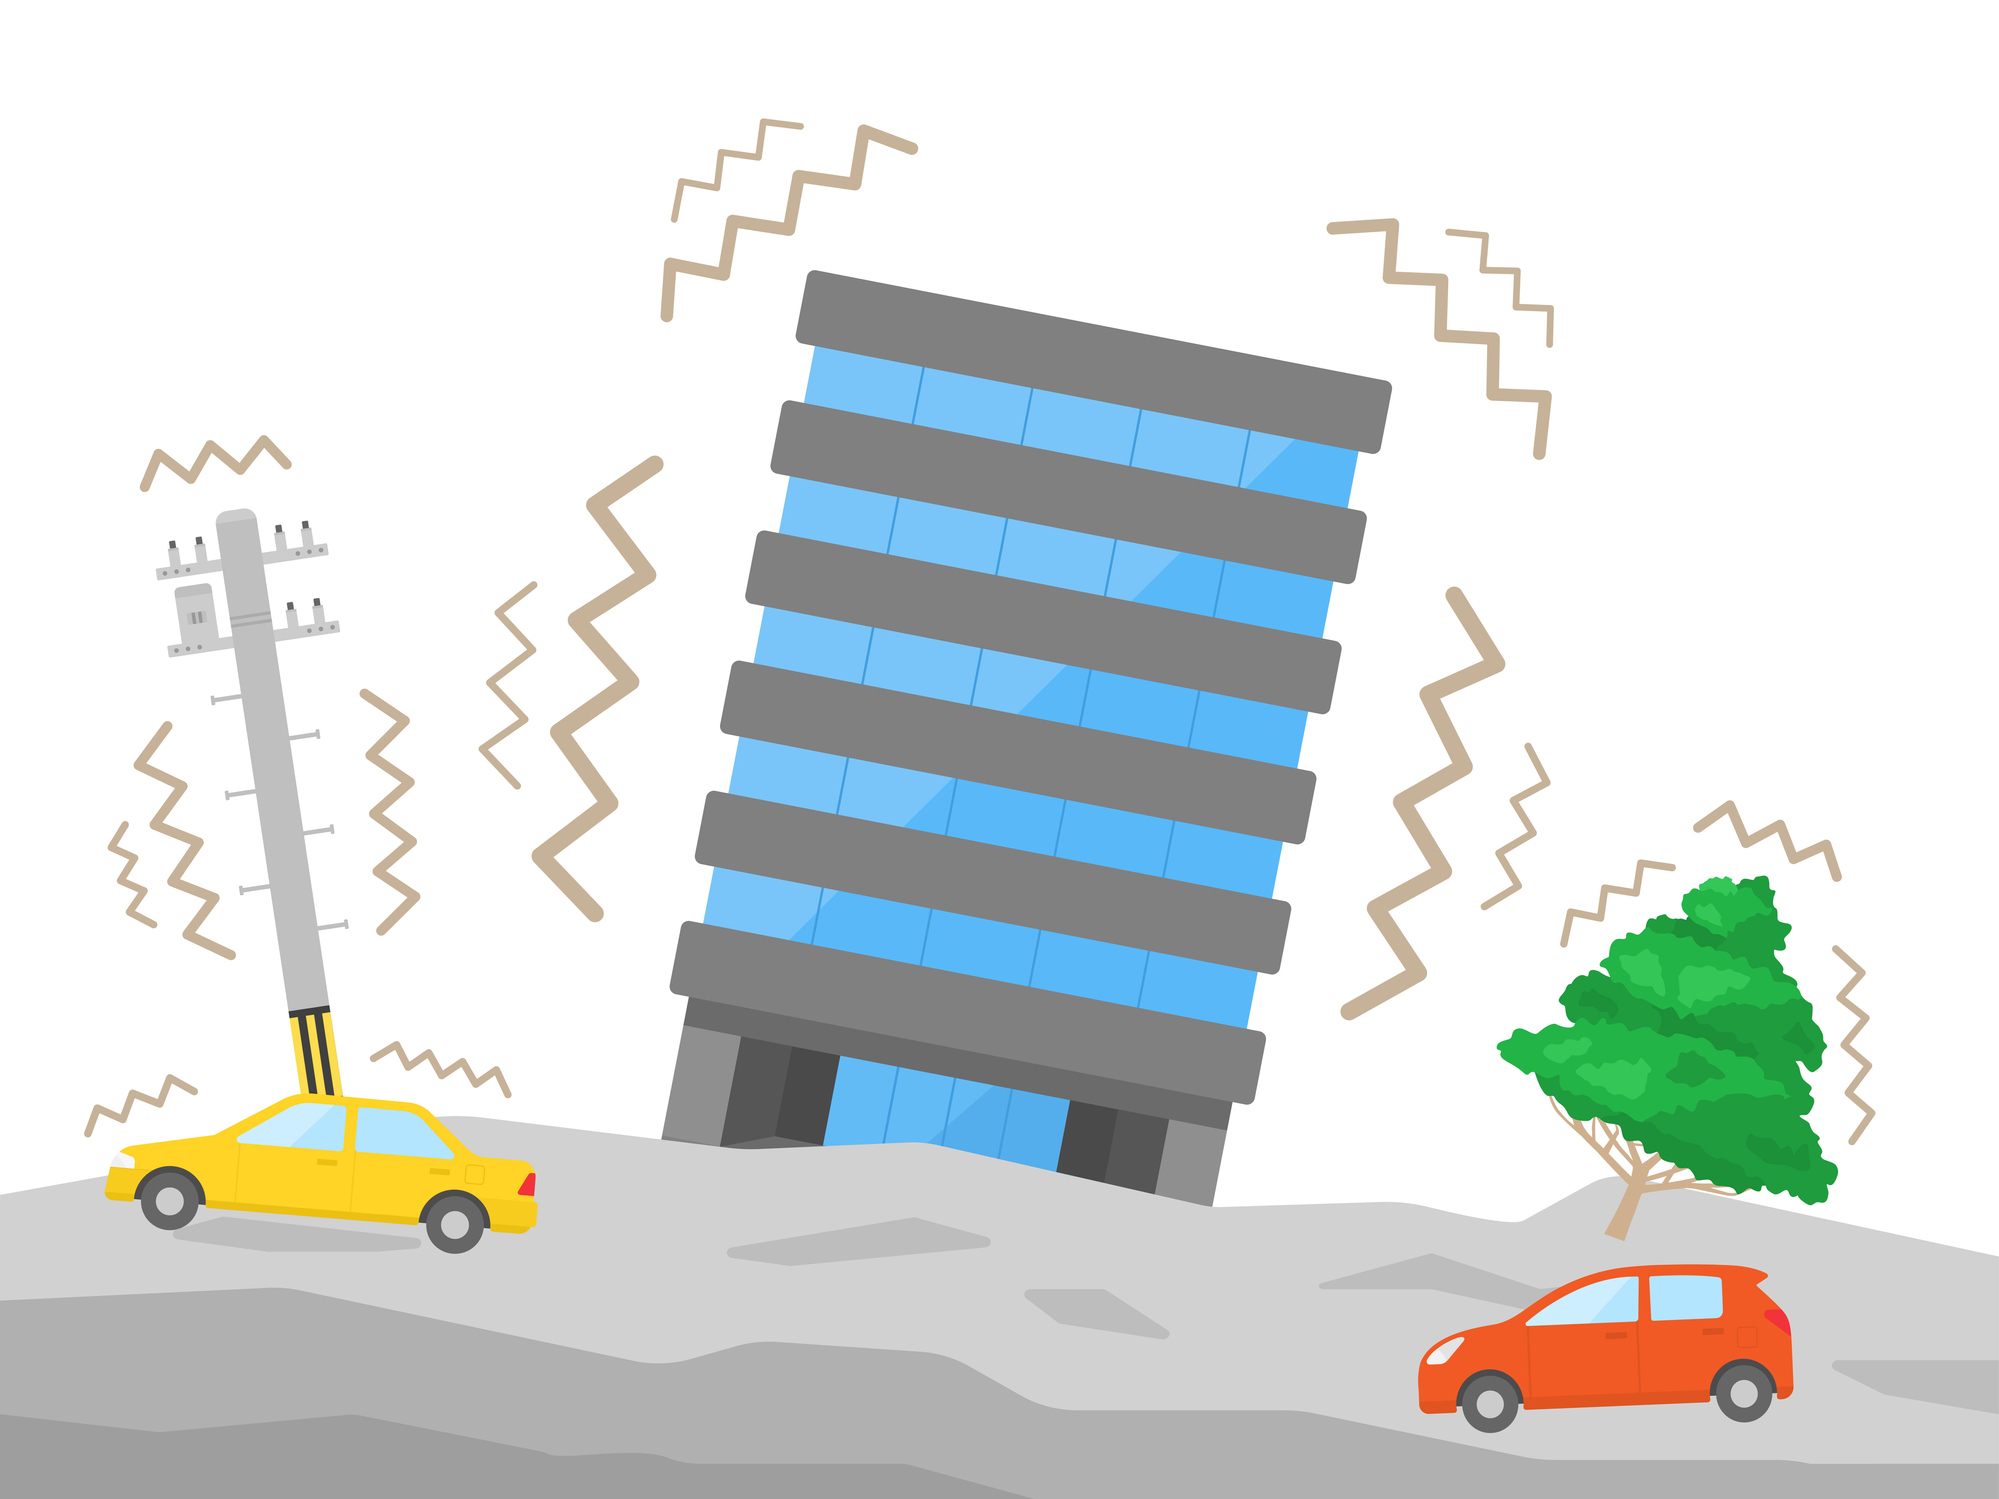 will my building collapse in an earthquake